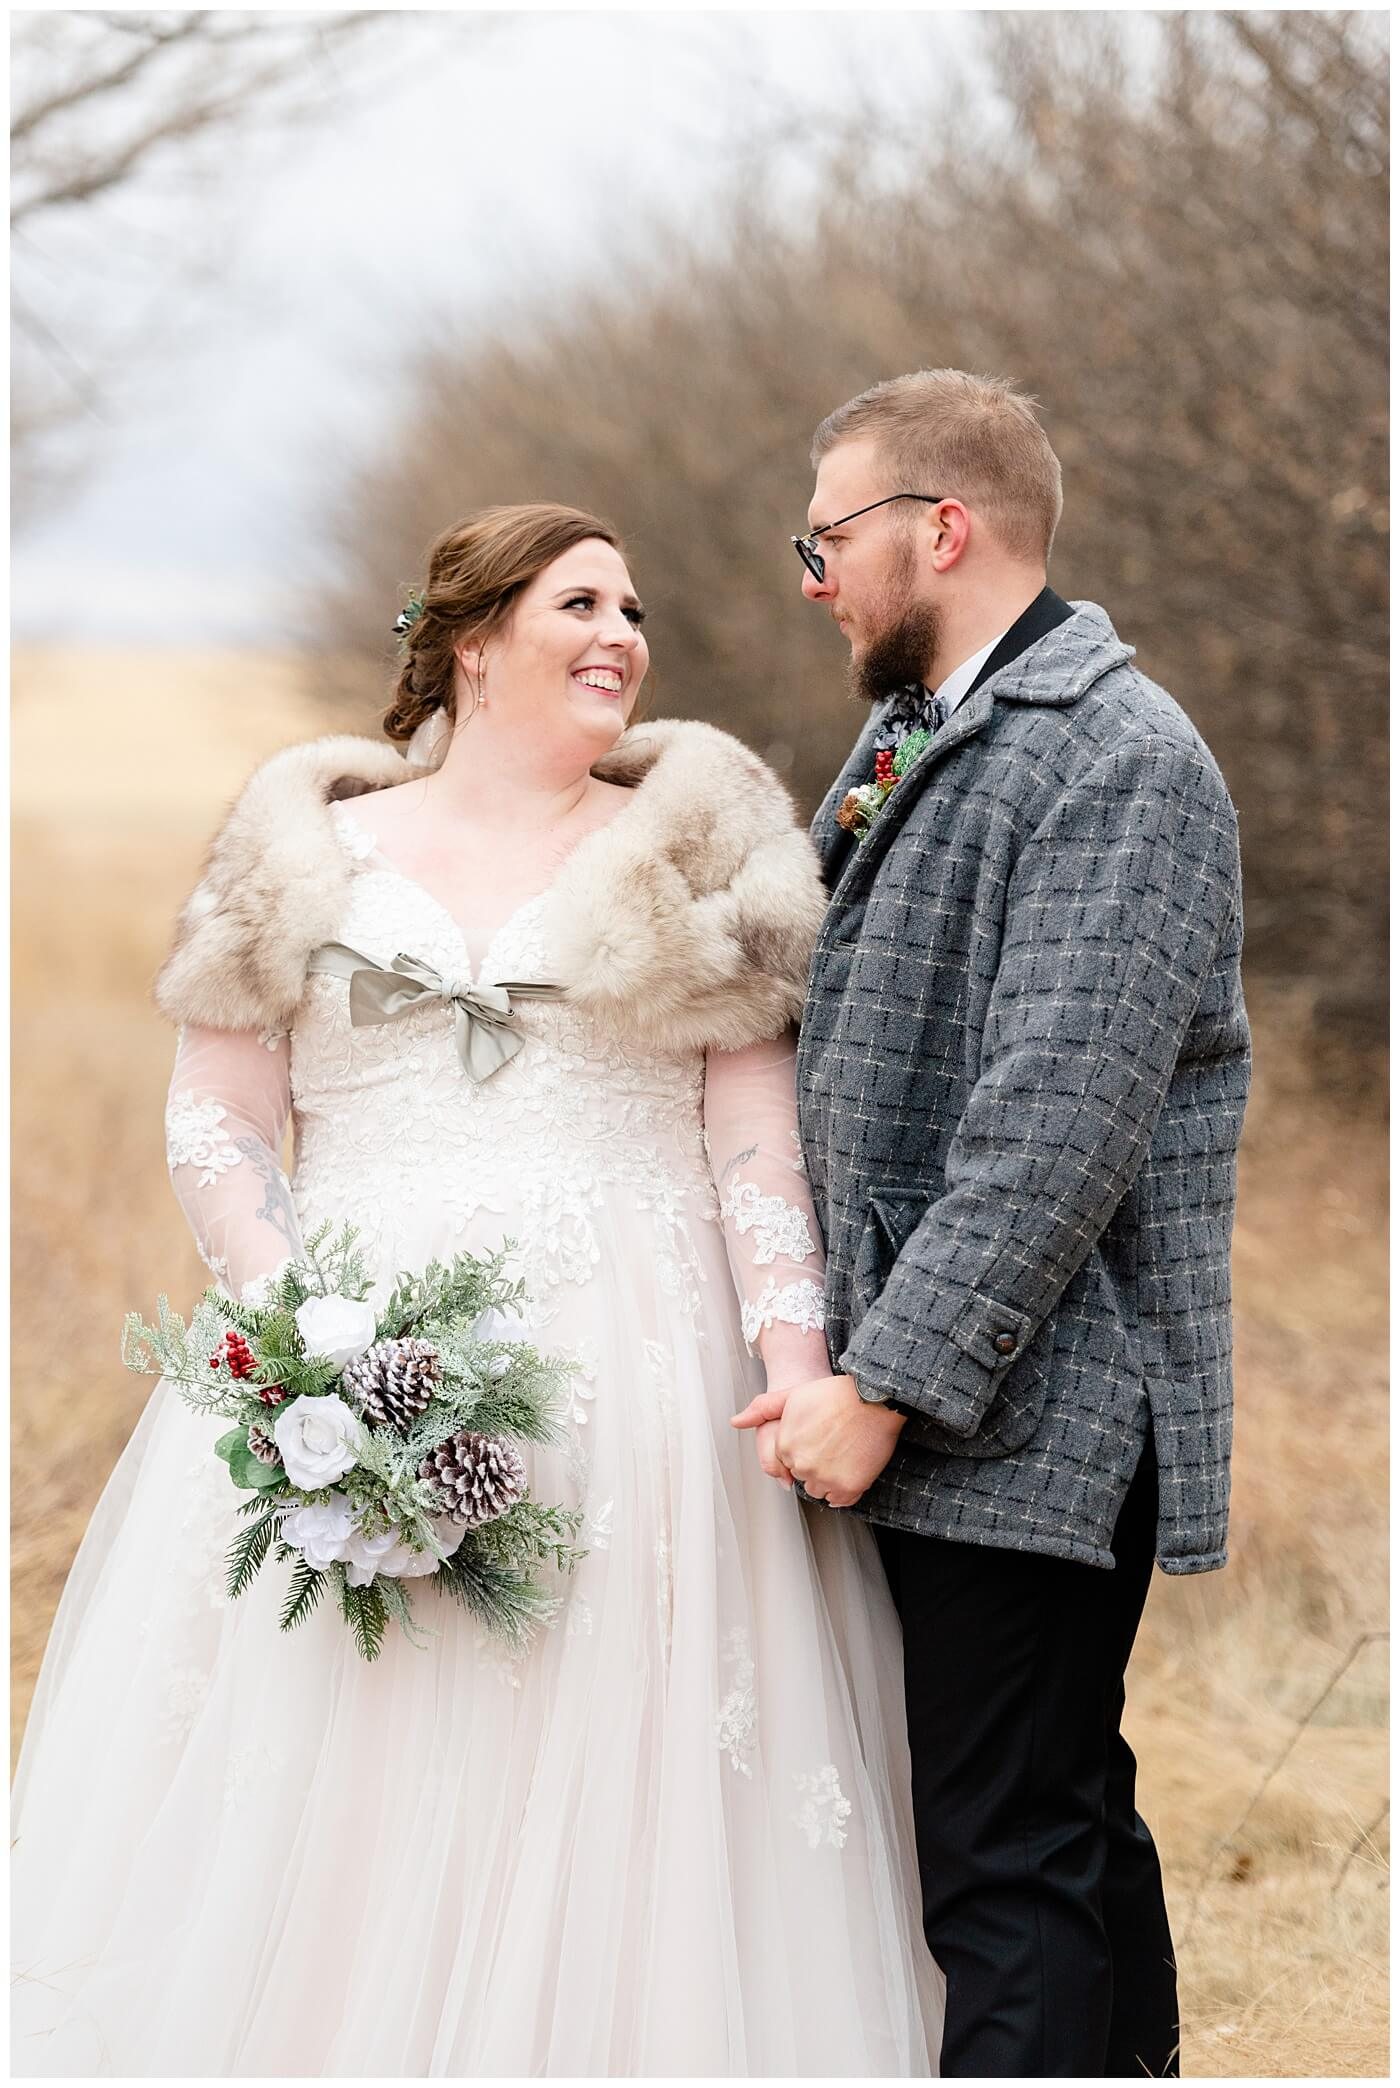 Regina Wedding Photographer - Kolton - Maxine - Bride wears vintage fur stole on her wintery wedding day